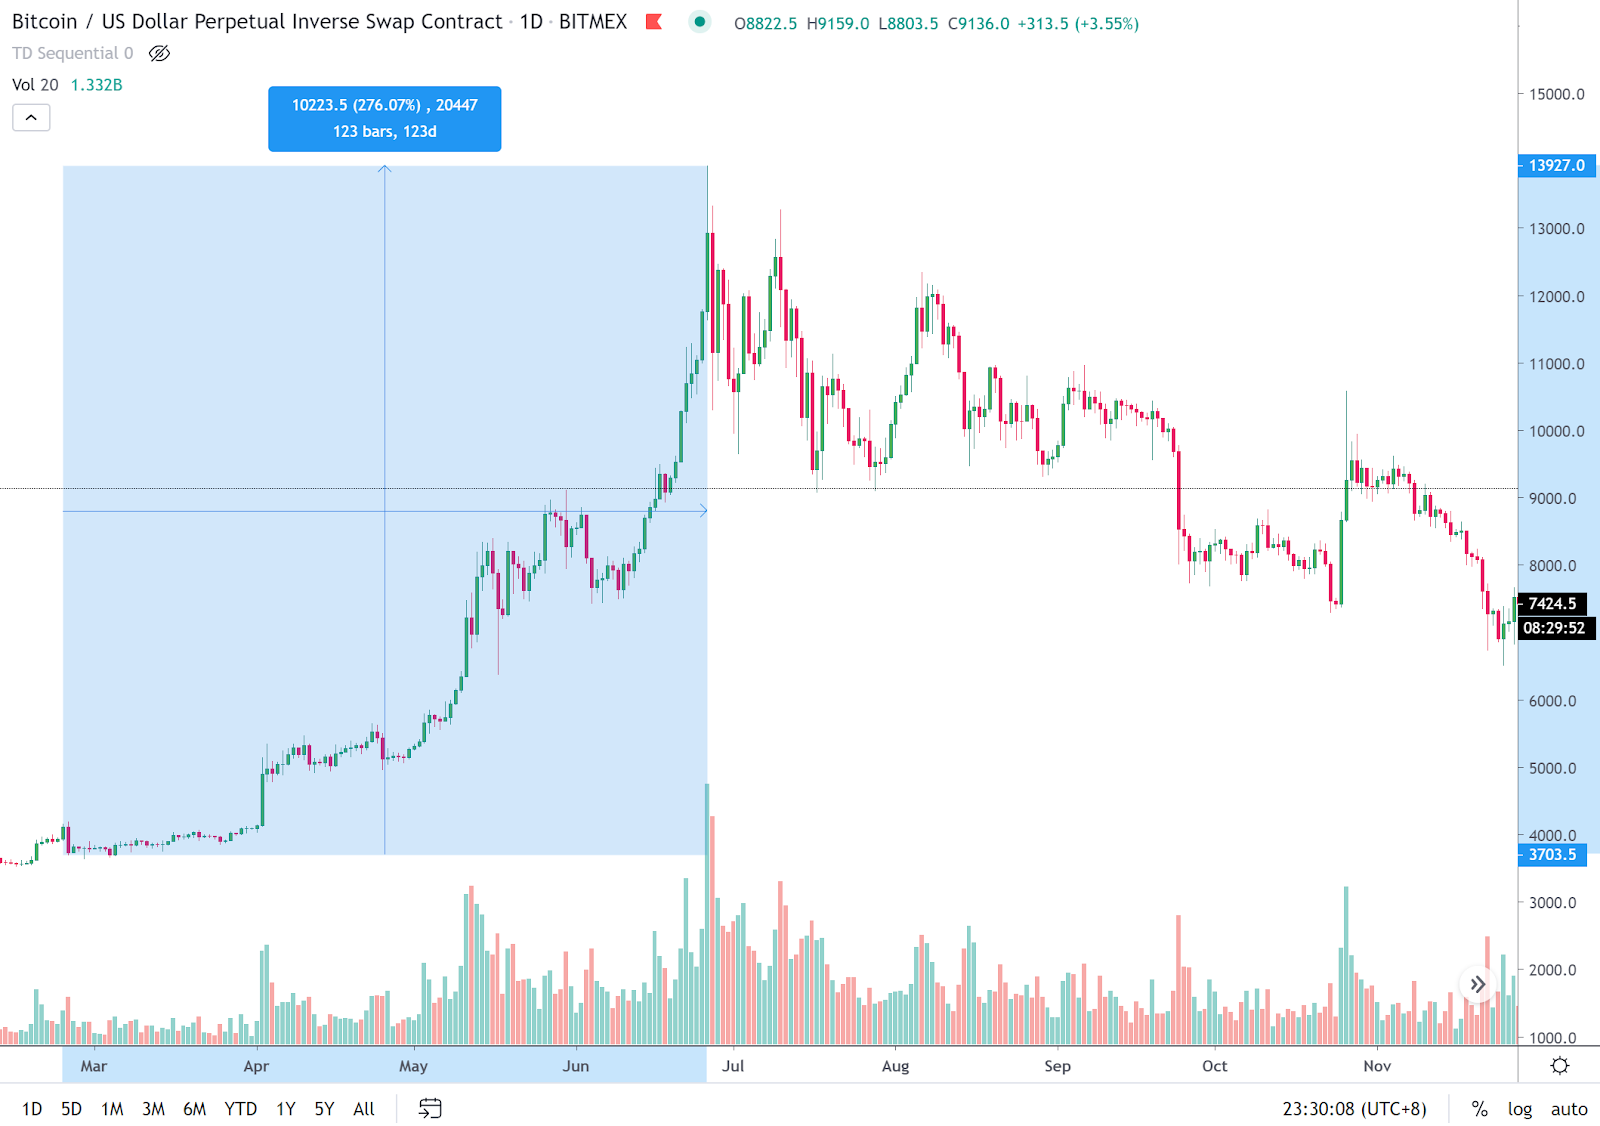 Bitcoin Price Chart Fractal Seen In 2019 Hints At 14k Within Months